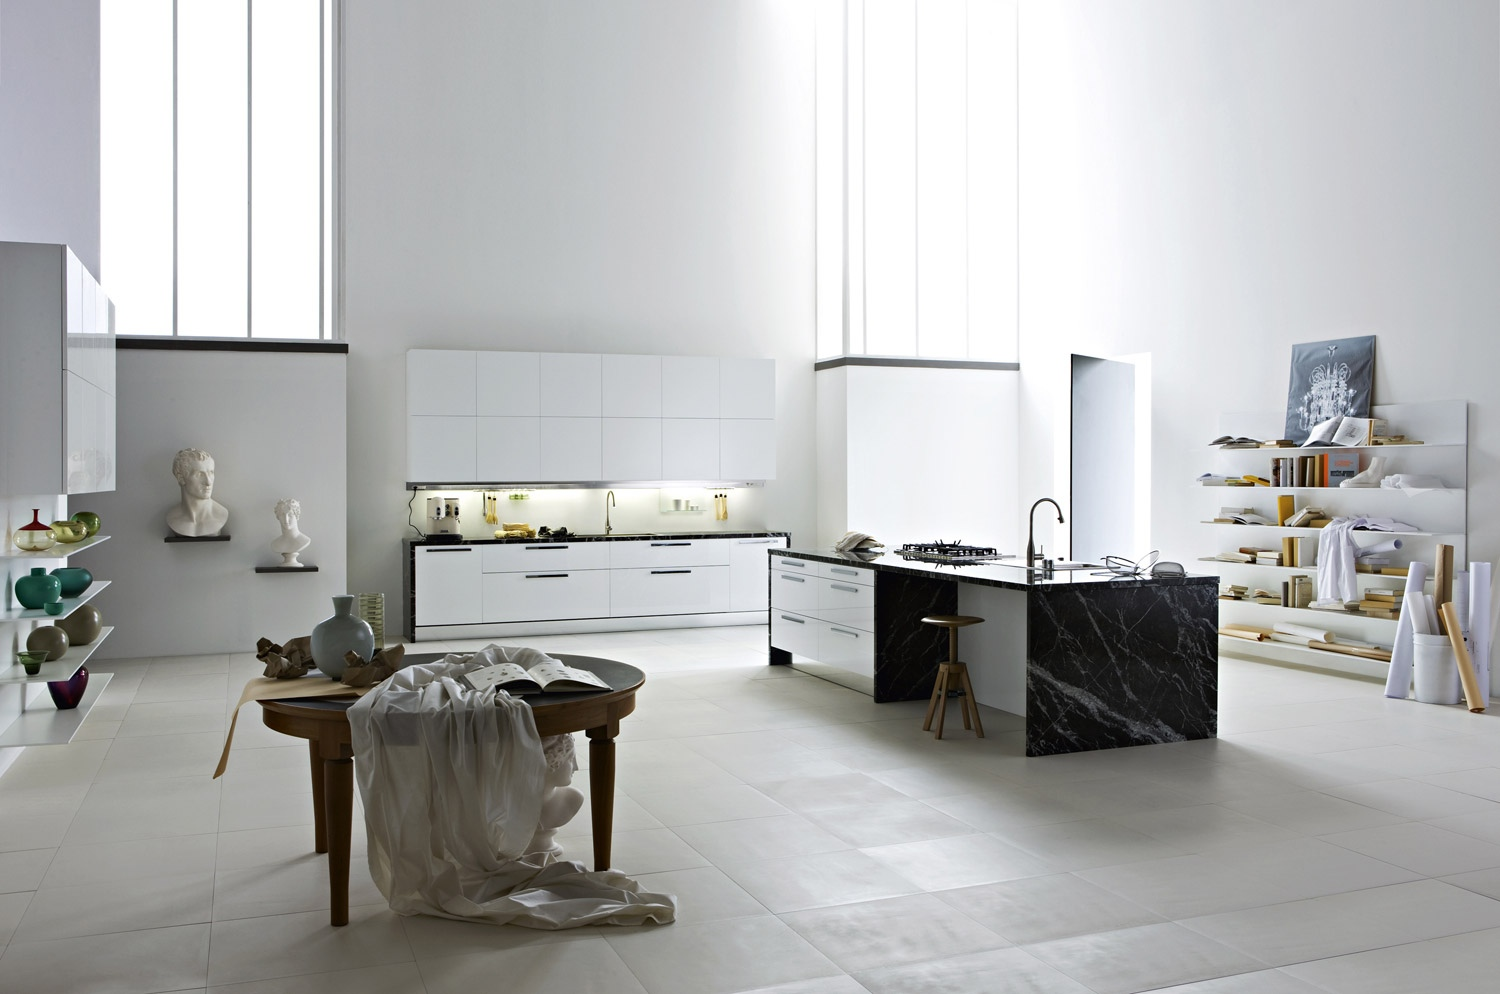 Kitchen designs with personality for Kichan dizain